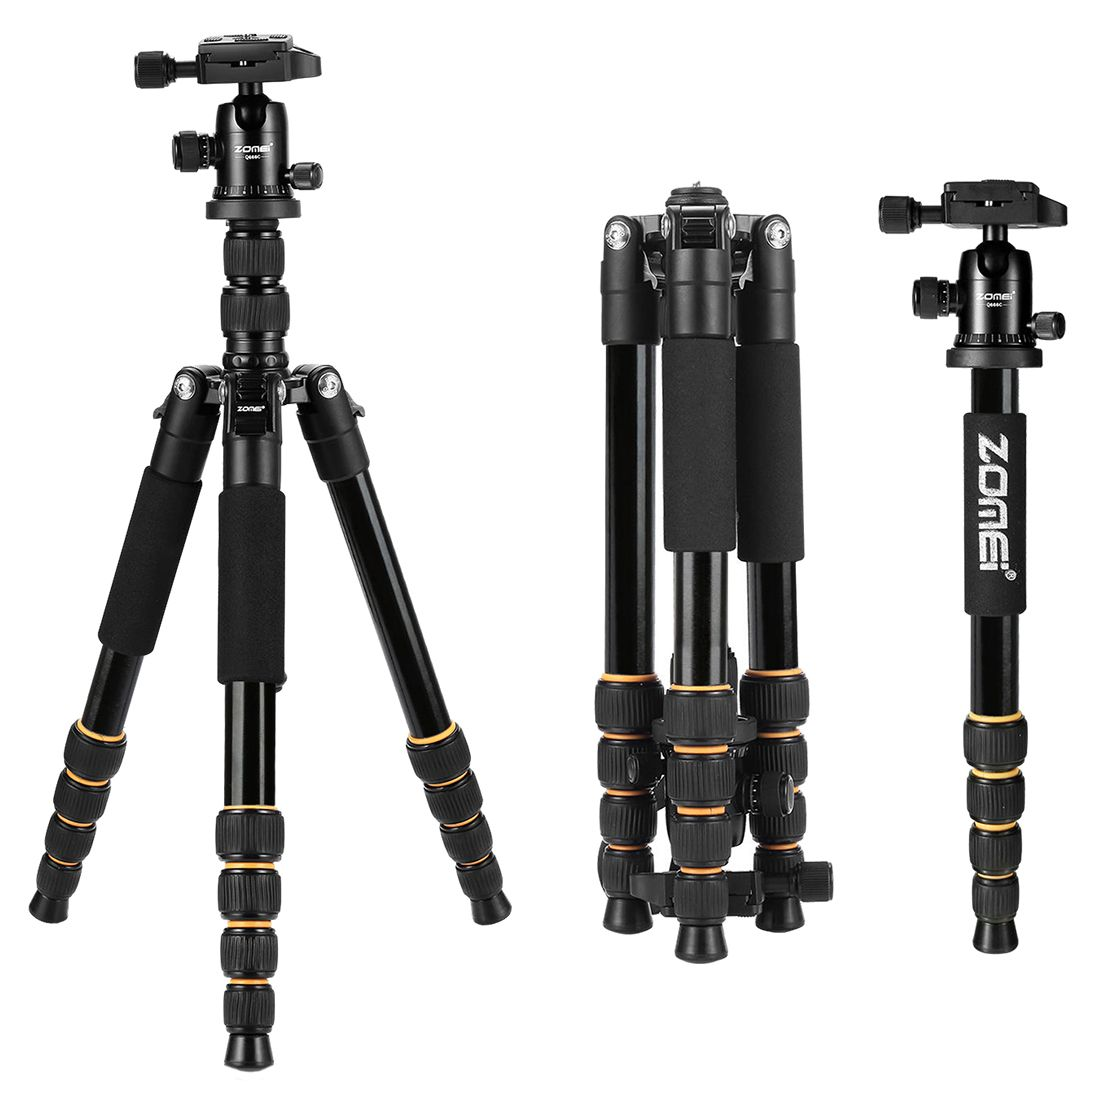 ZOMEi Q666 Professional Travel Camera Tripod Monopod aluminum Ball Head compact for digital SLR DSLR camera